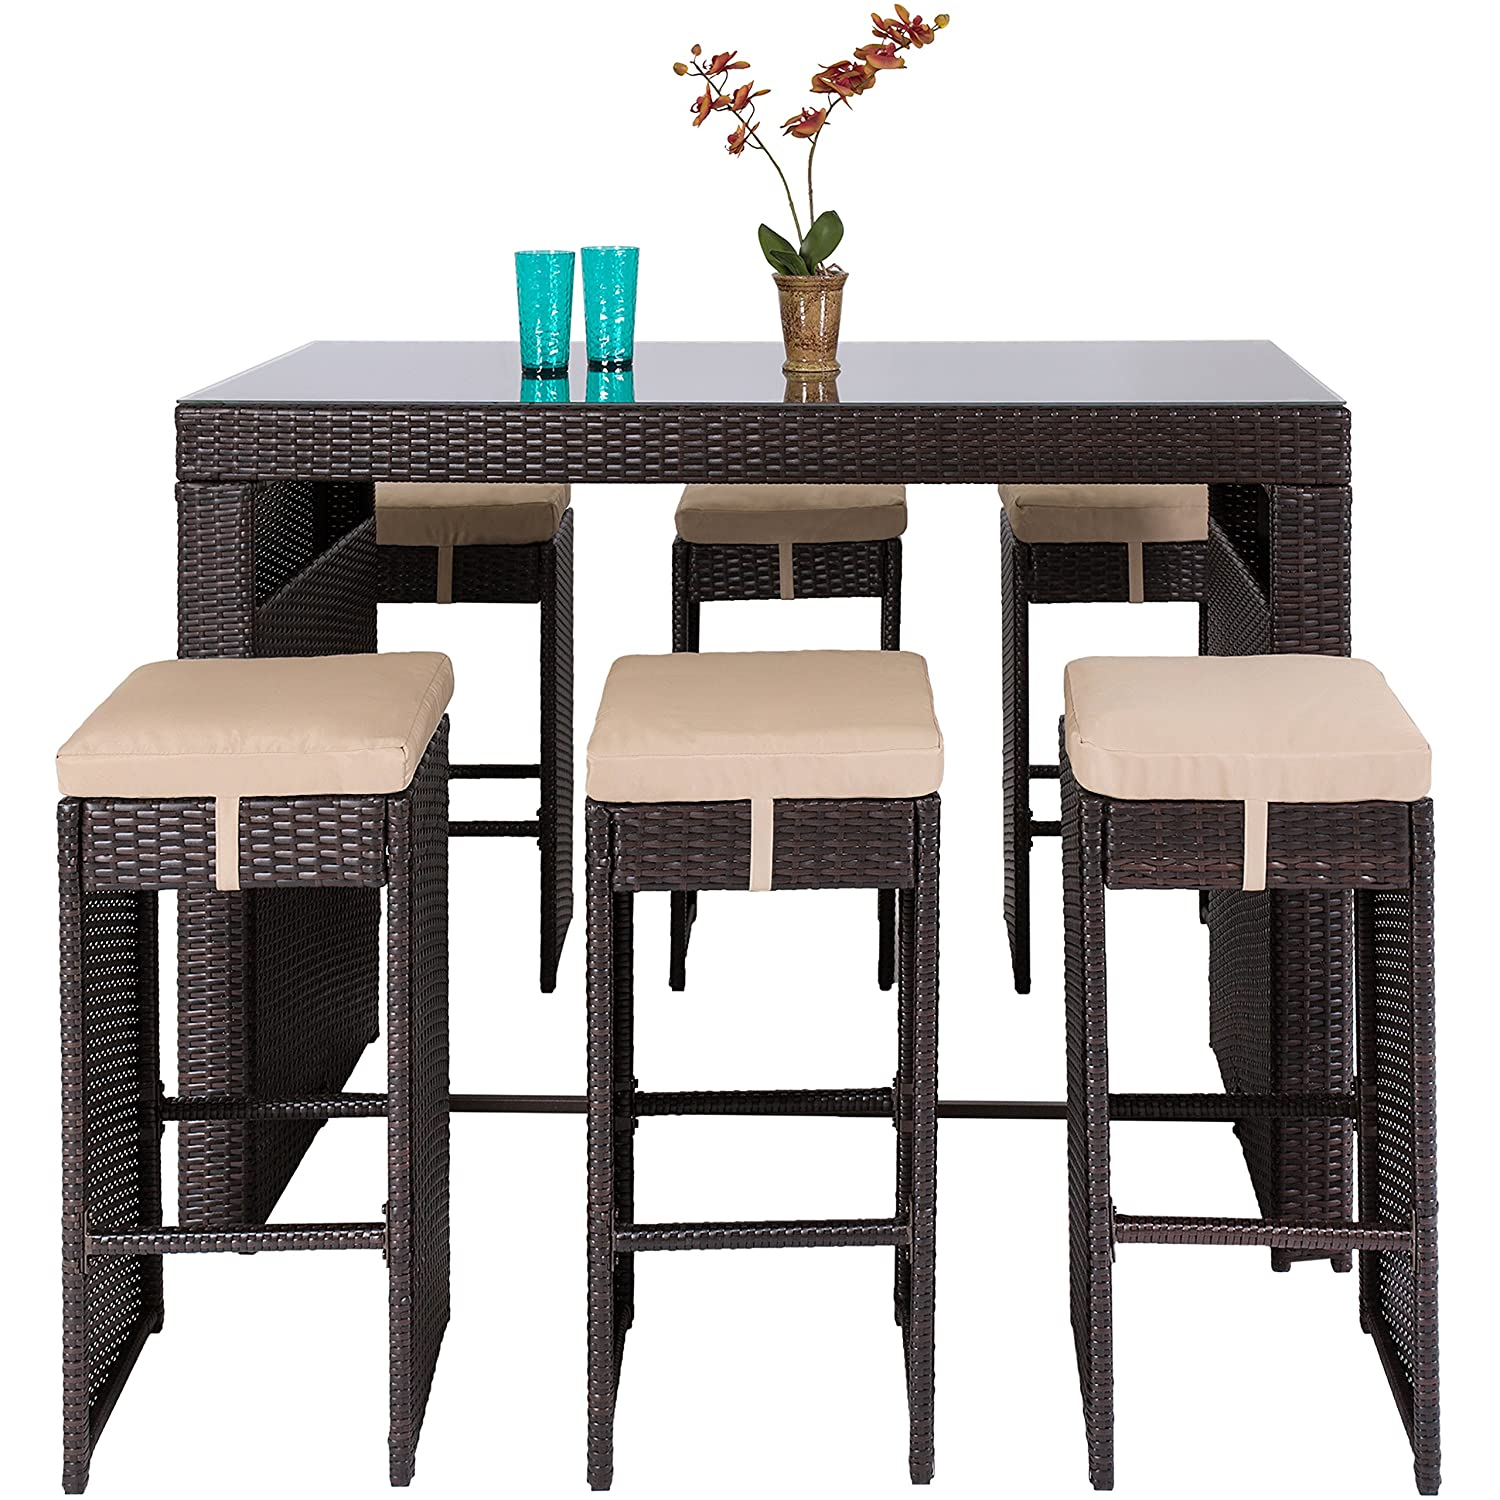 amazoncom best choice products 7pc rattan wicker barstool dining table set bar stool brown garden u0026 outdoor